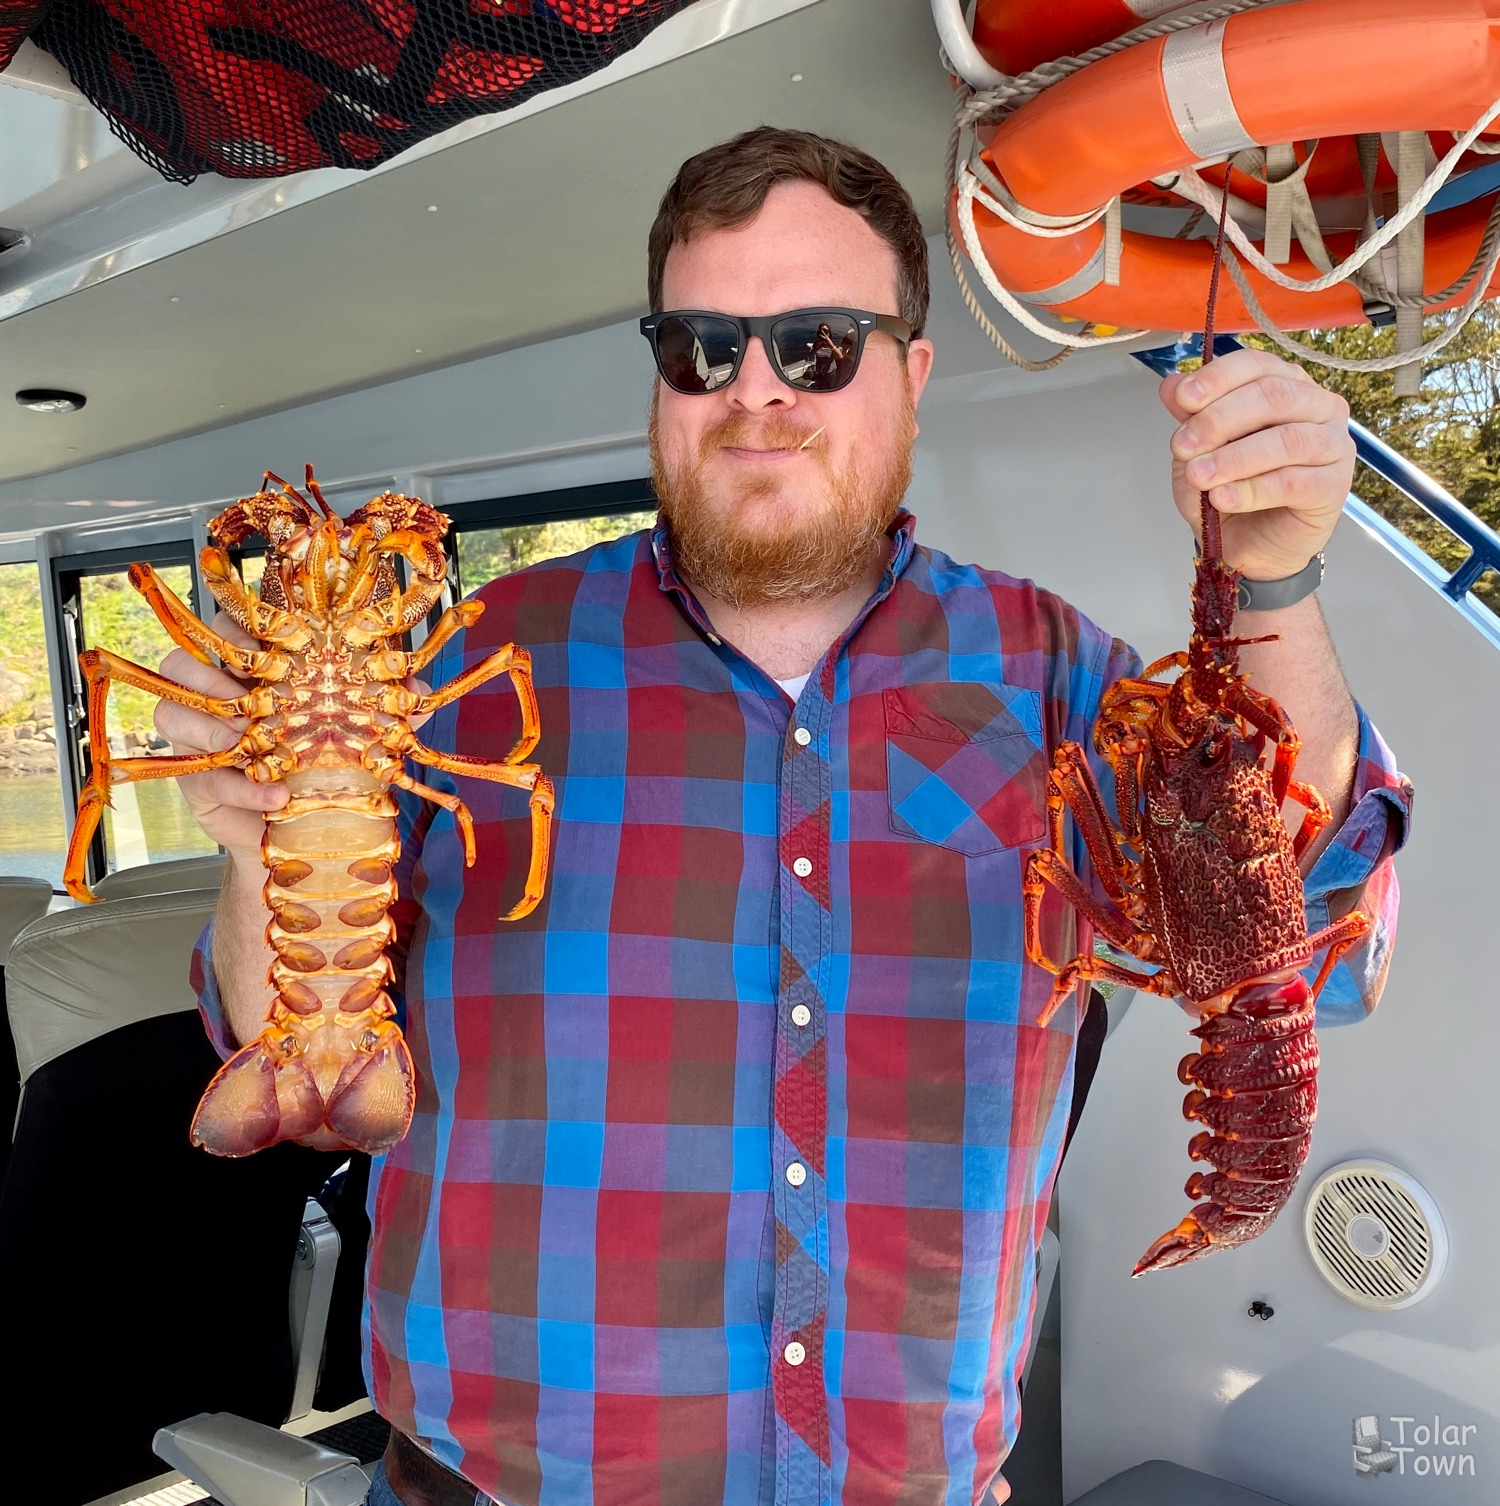 Me holding the rock lobster